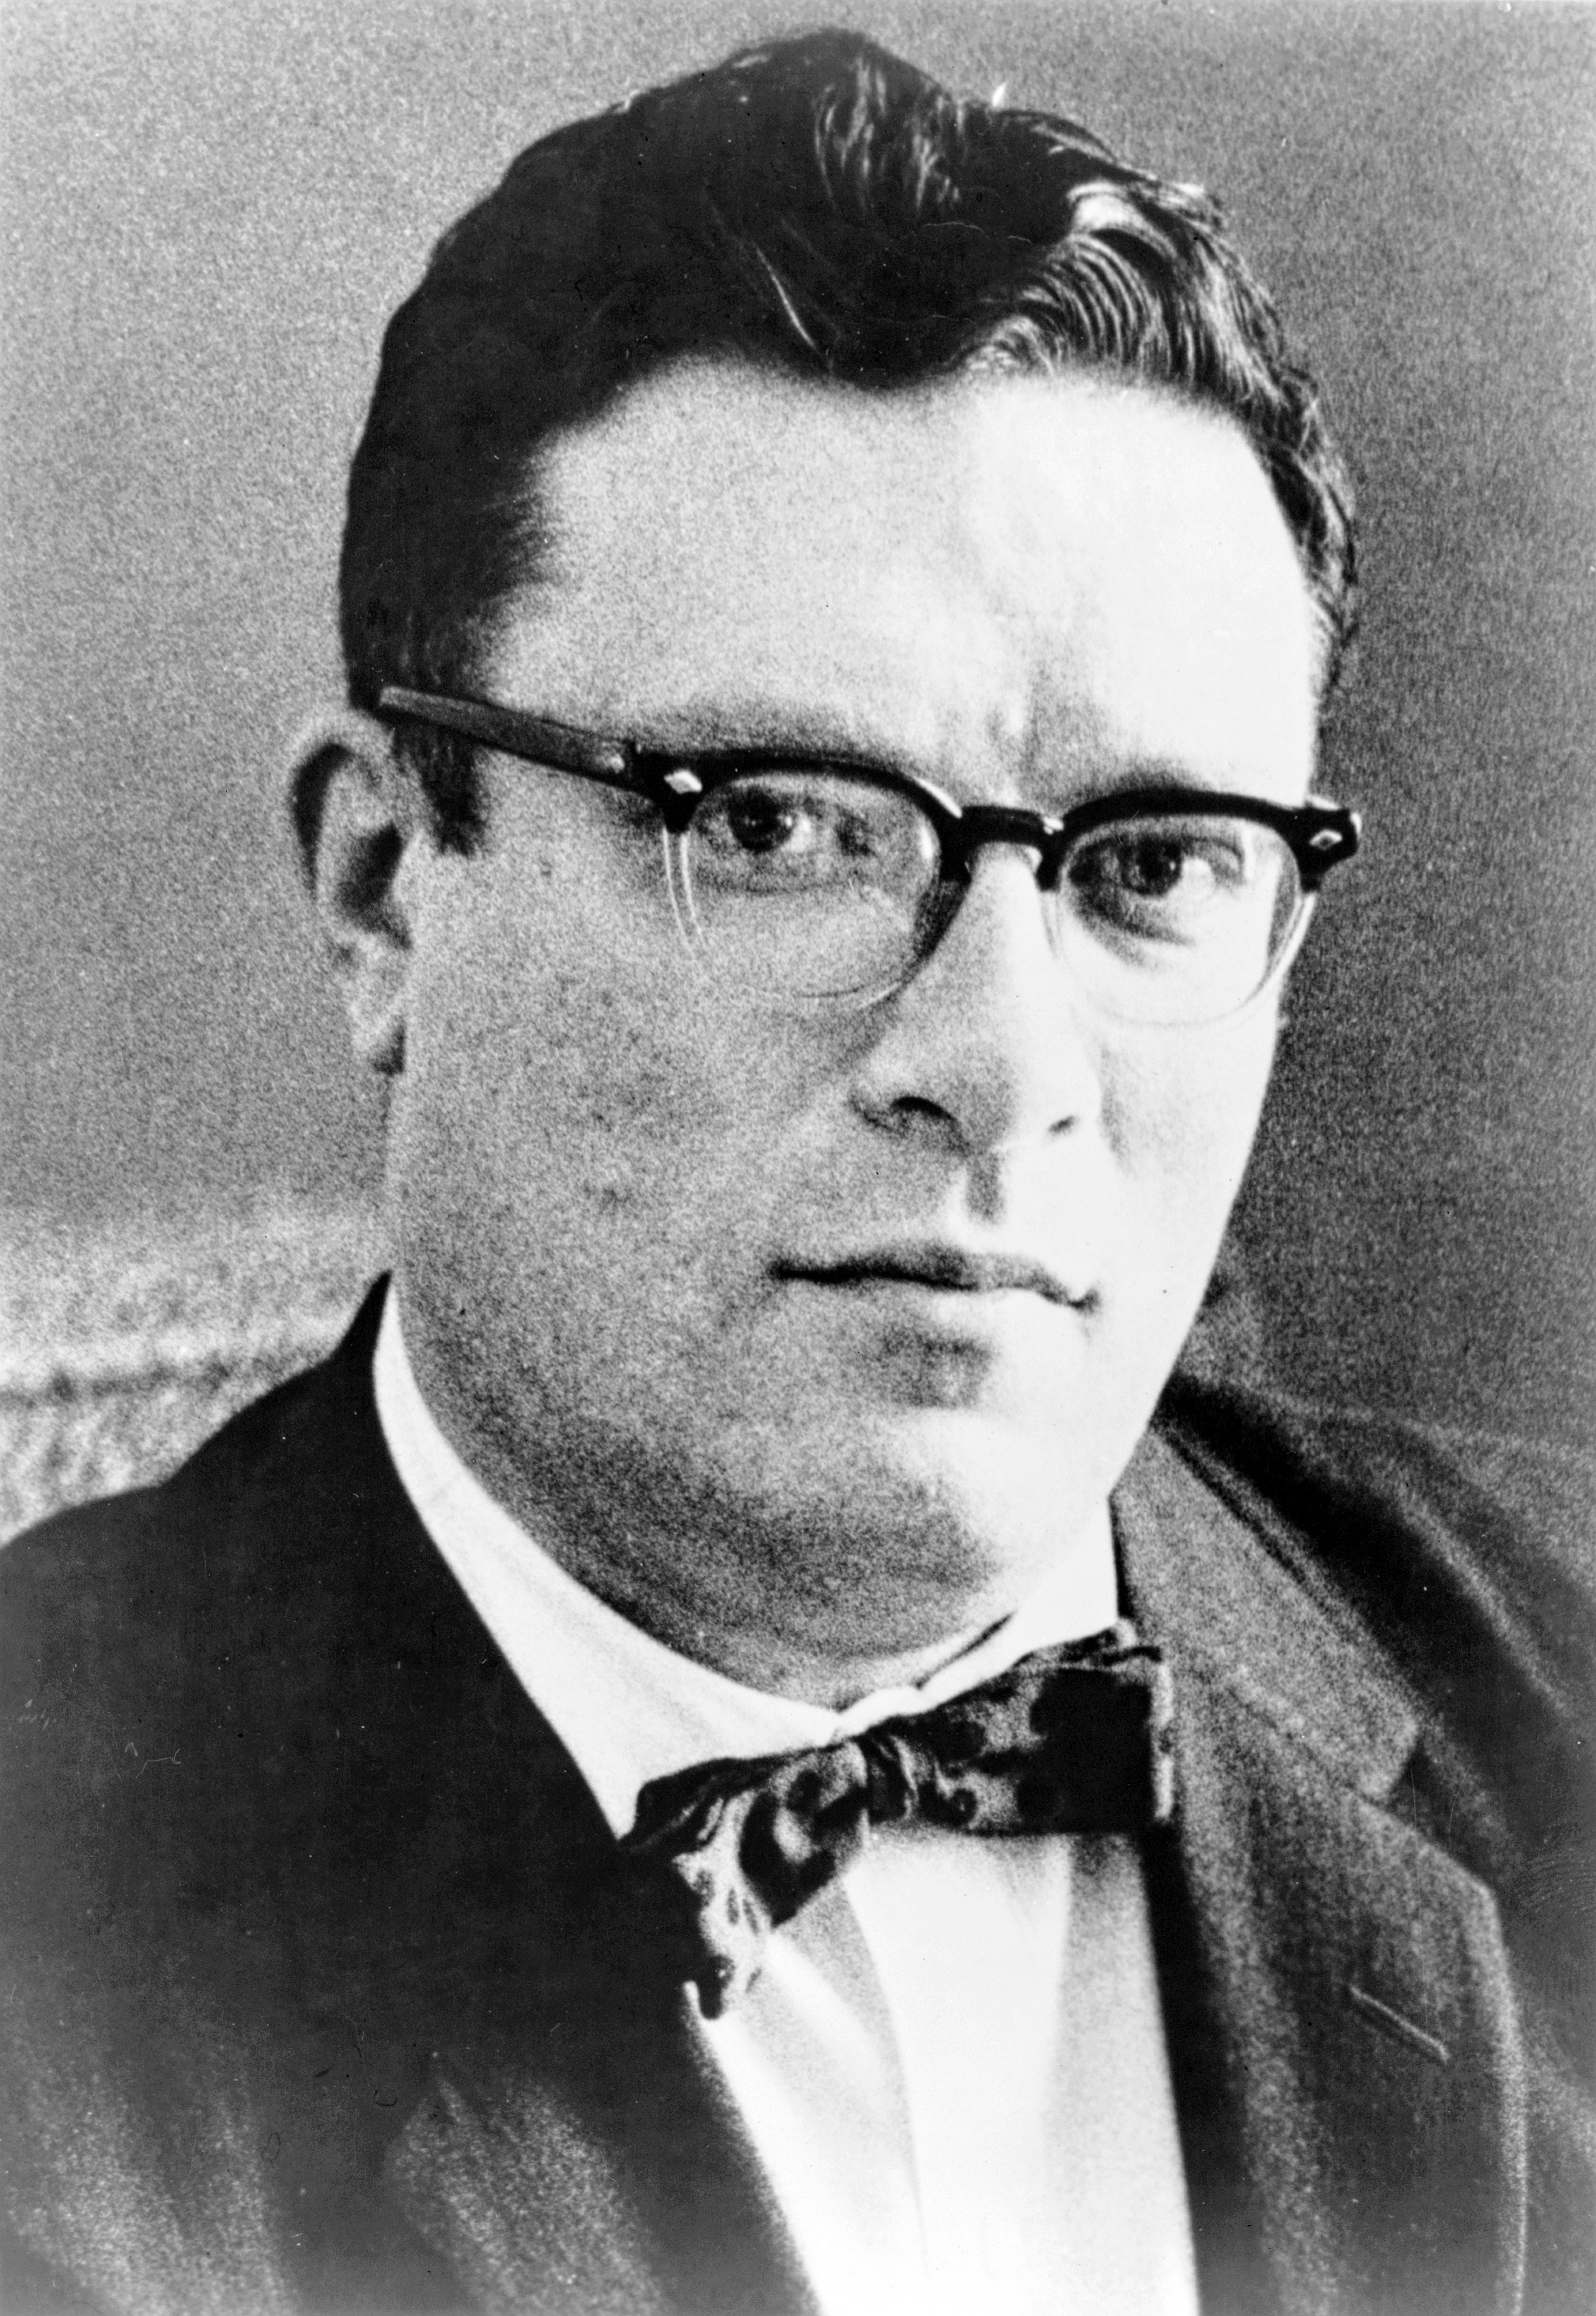 Dr. Isaac Asimov, head-and-shoulders portrait, facing slightly right. Published in 1965, this photo also appears on the jacket of the Doubleday first edition of Nine Tomorrows so date of creation can be no later than 1959.